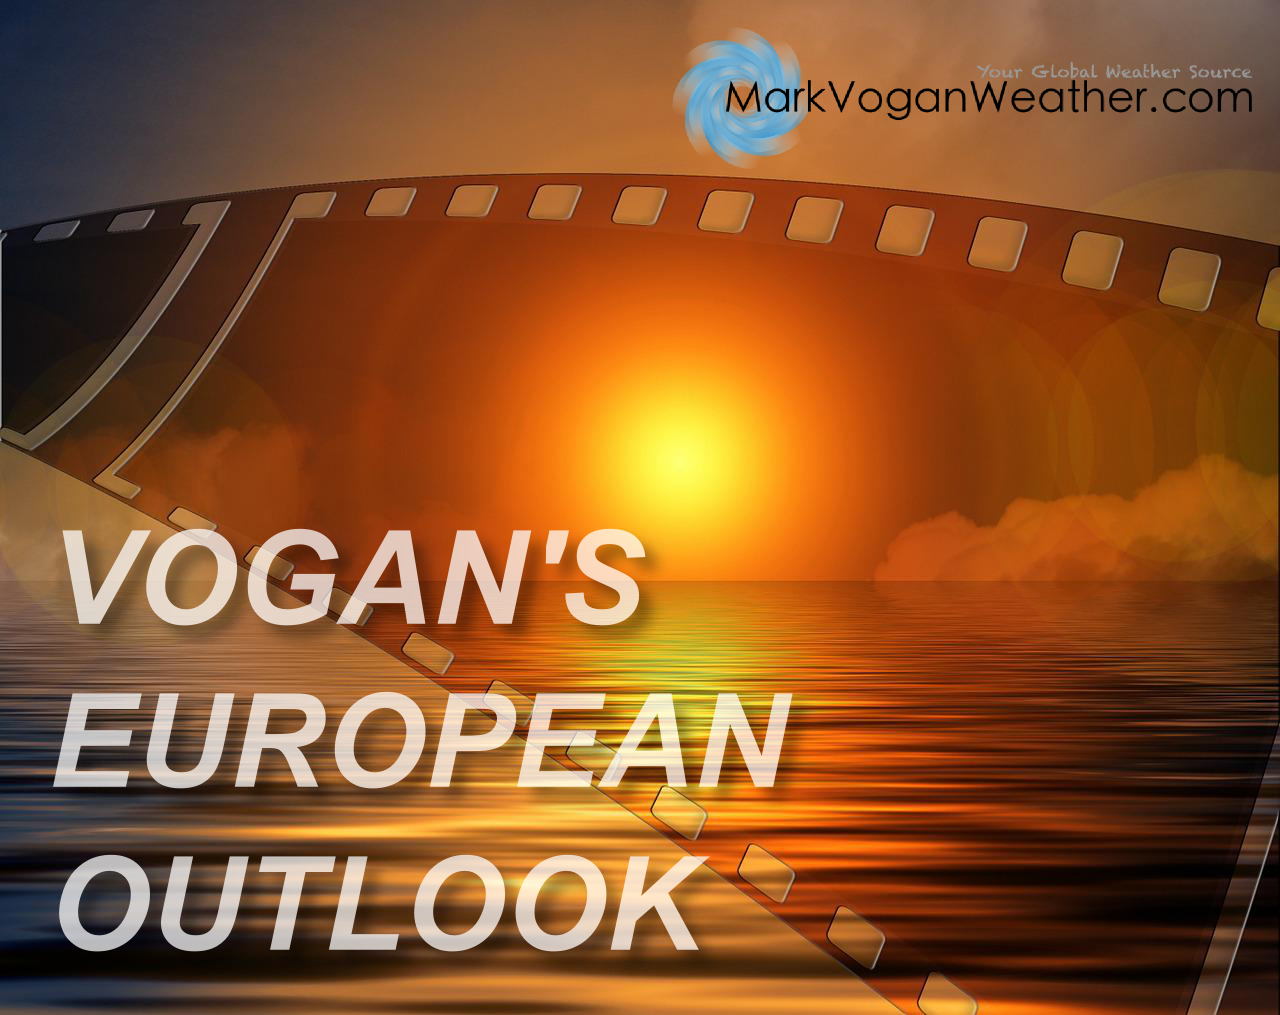 MON 29 SEP: VOGAN'S EUROPEAN OUTLOOK